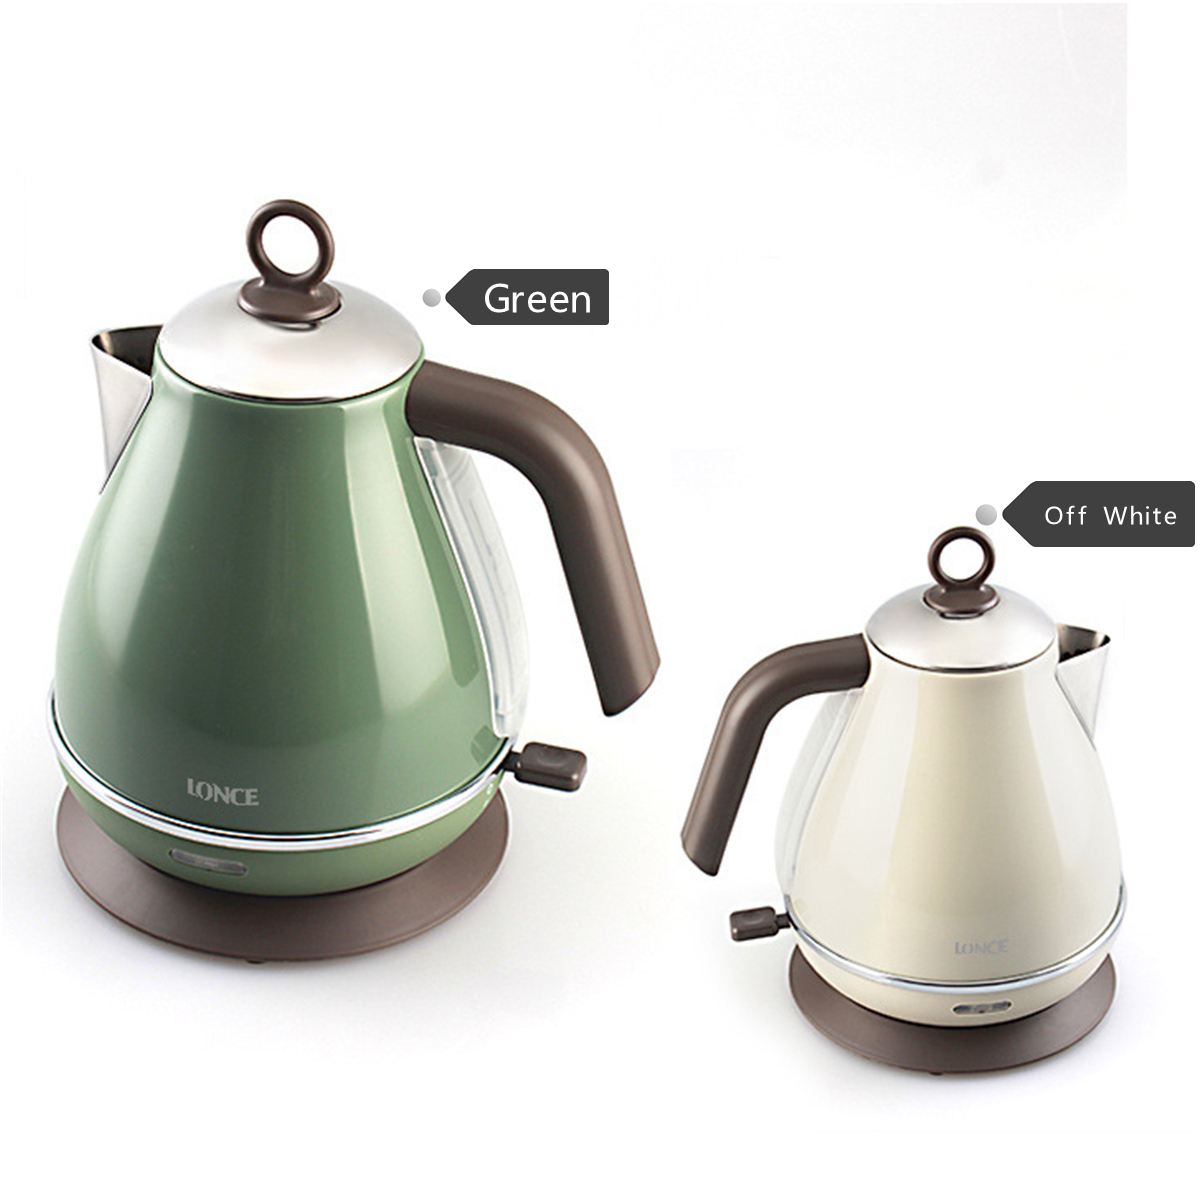 1.7L 1850W Electric Kettle Auto Shut Off Water Kettle Water Boiler 304 Stainless Water Kettle